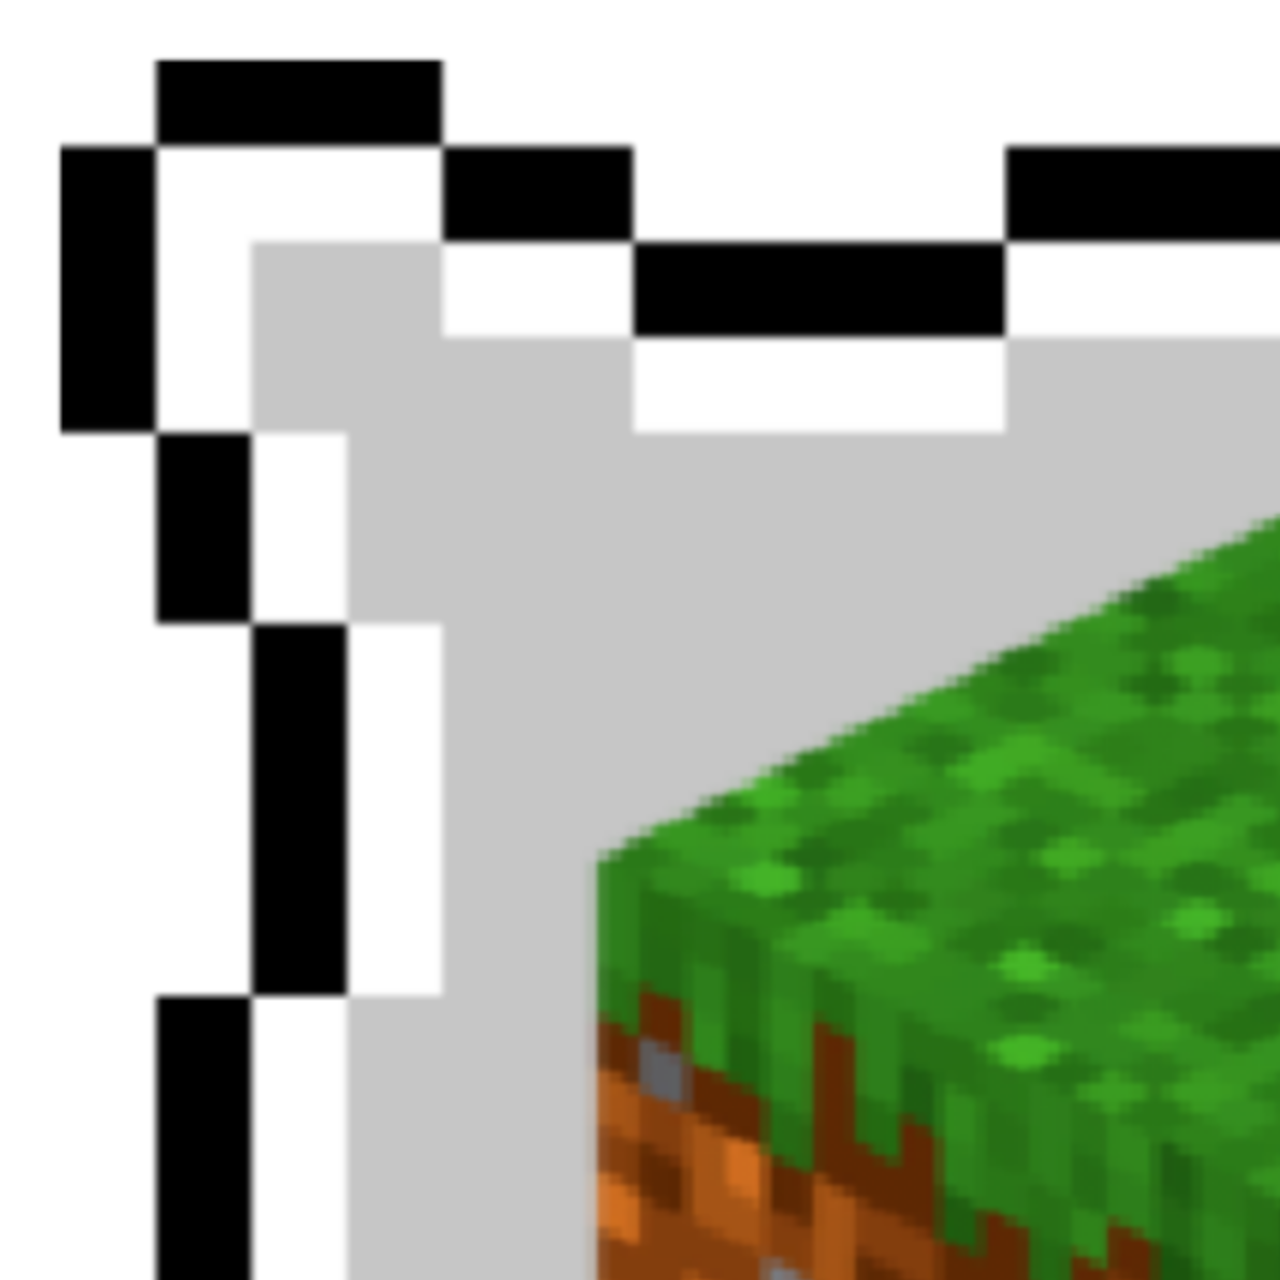 pack_icon.png